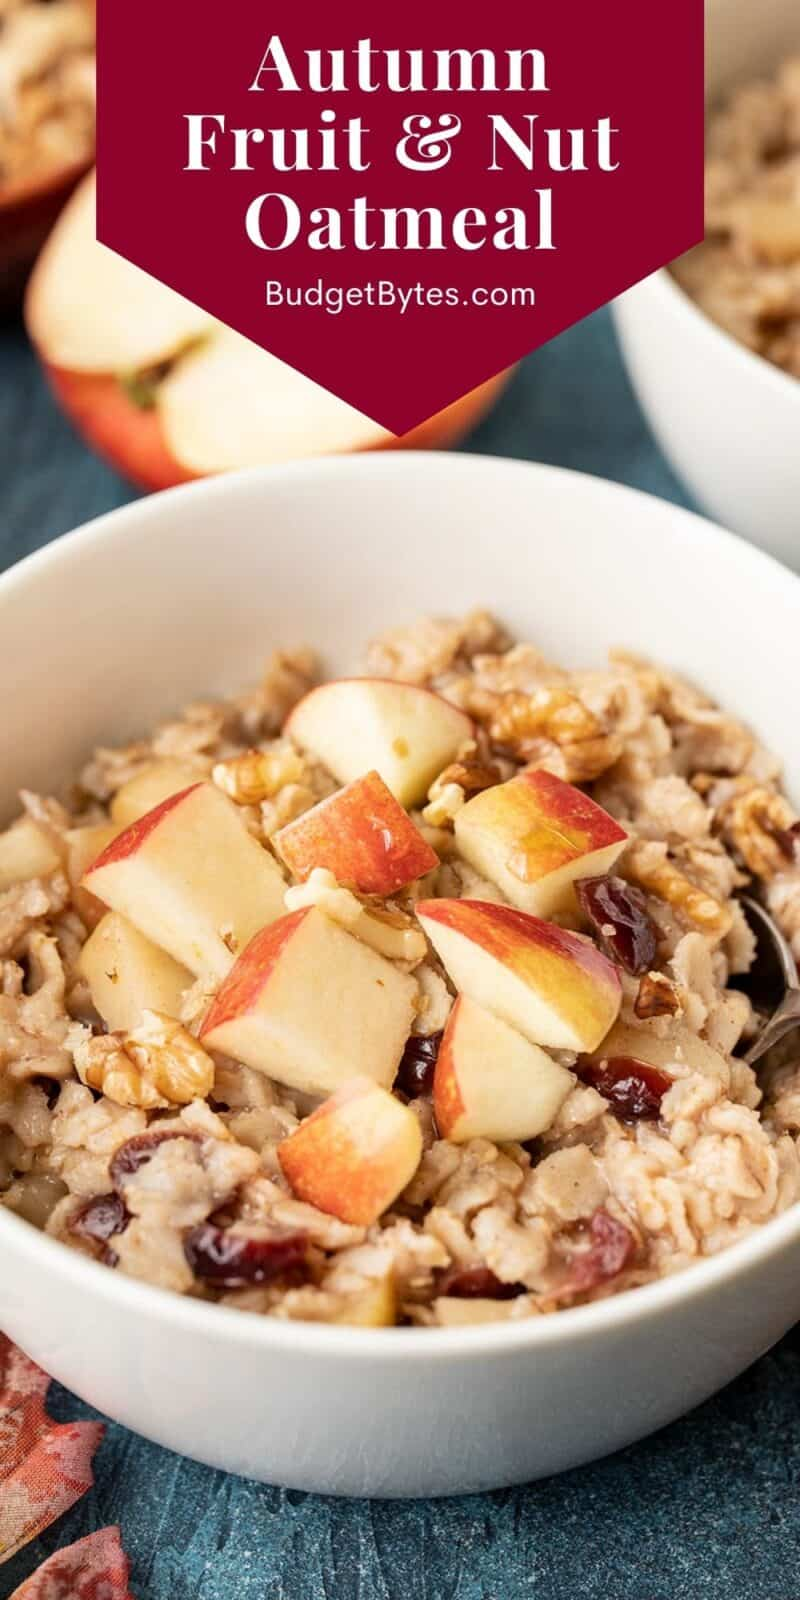 Close up side view of a bowl of autumn fruit and nut oatmeal, title text at the top